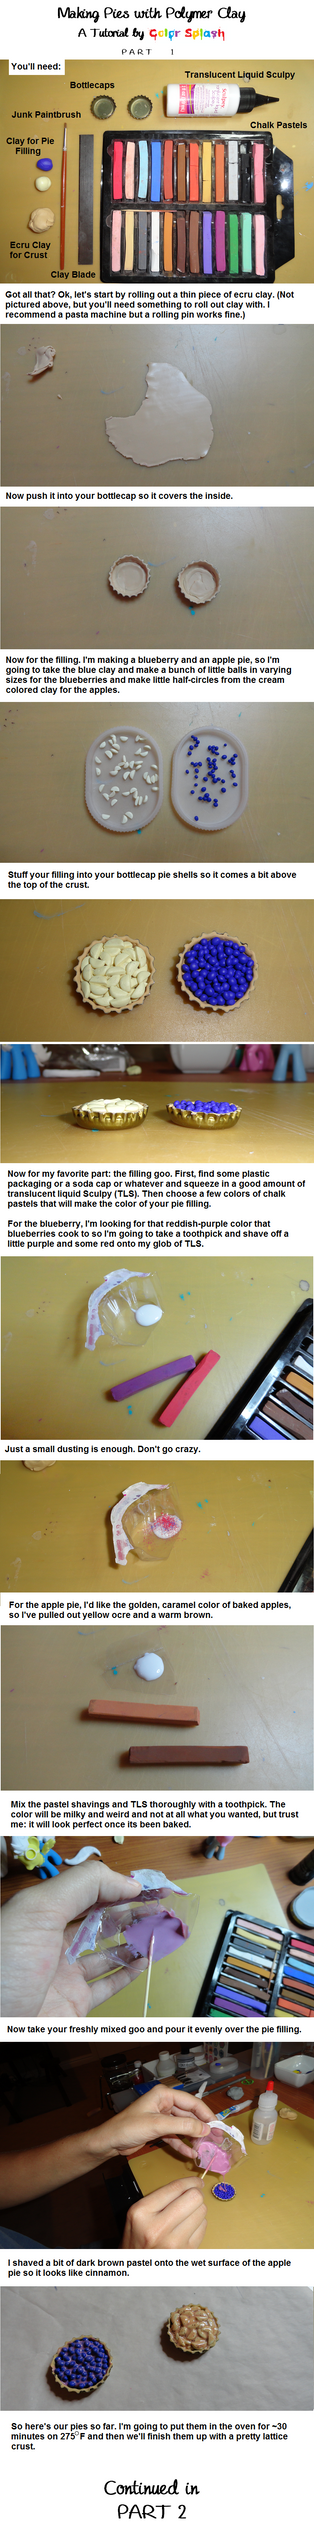 Polymer Clay Pie Tutorial PART 1 by Colour-Splashes